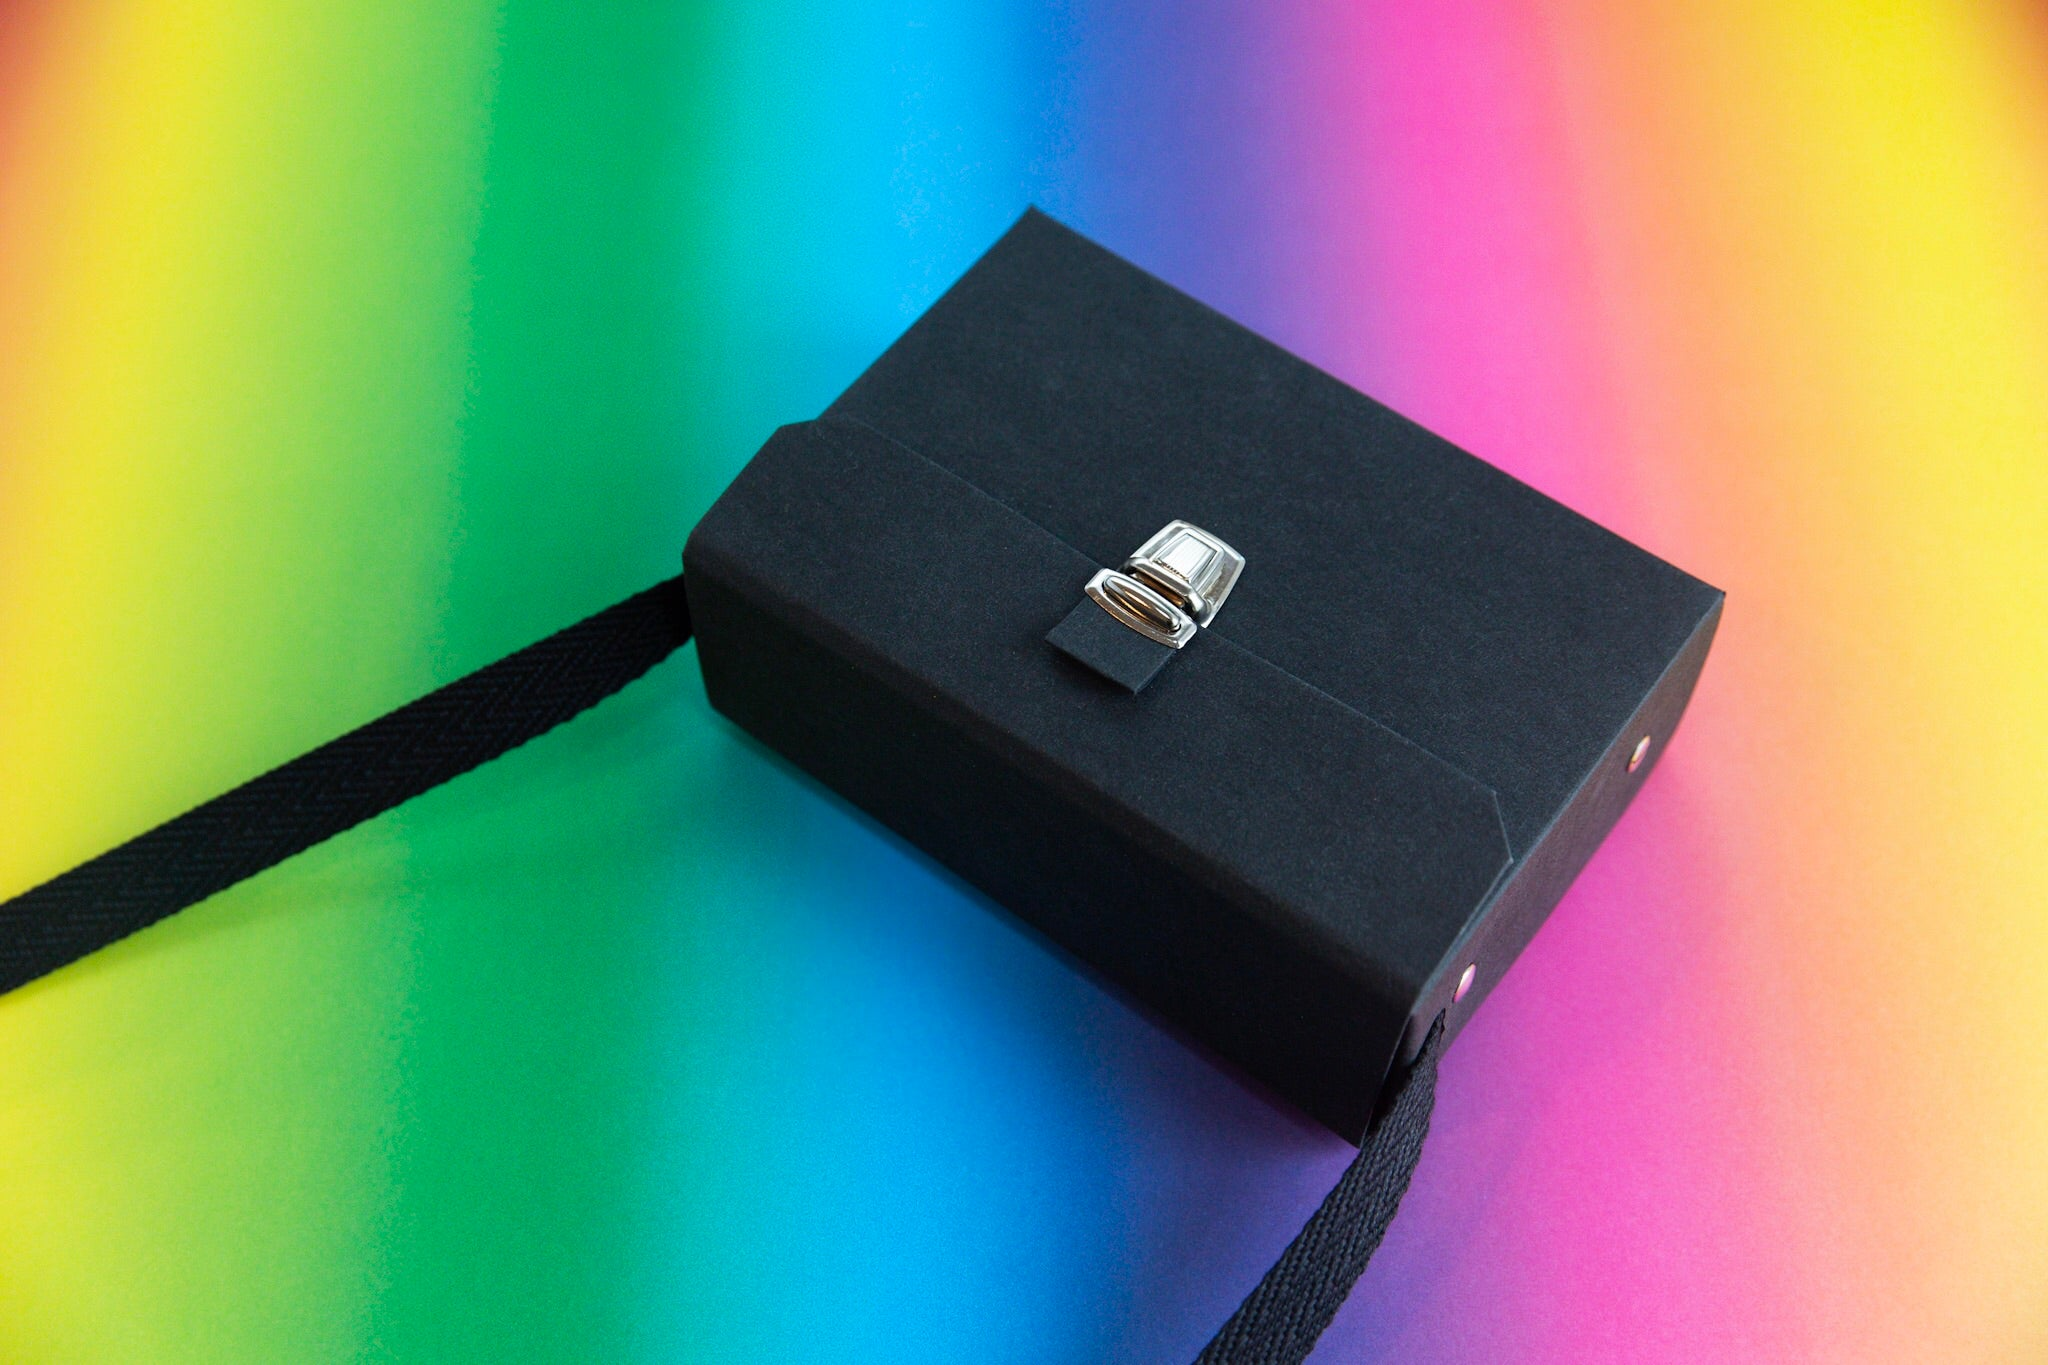 BLACK BAG cube SOLD OUT